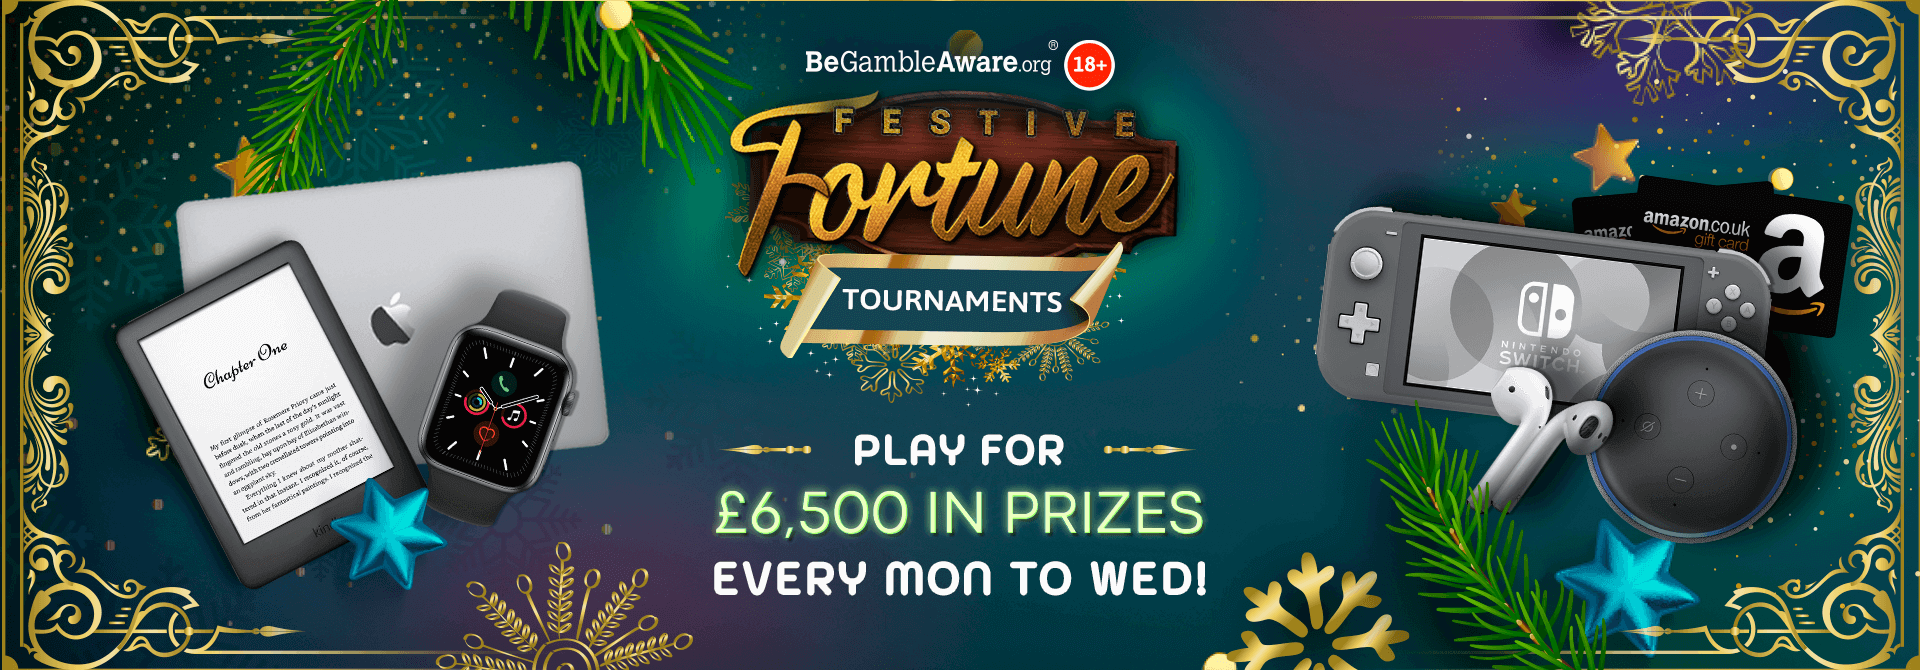 Who was able to spin in a wintery win with Dr Slot's Festive Fortune Tournaments?